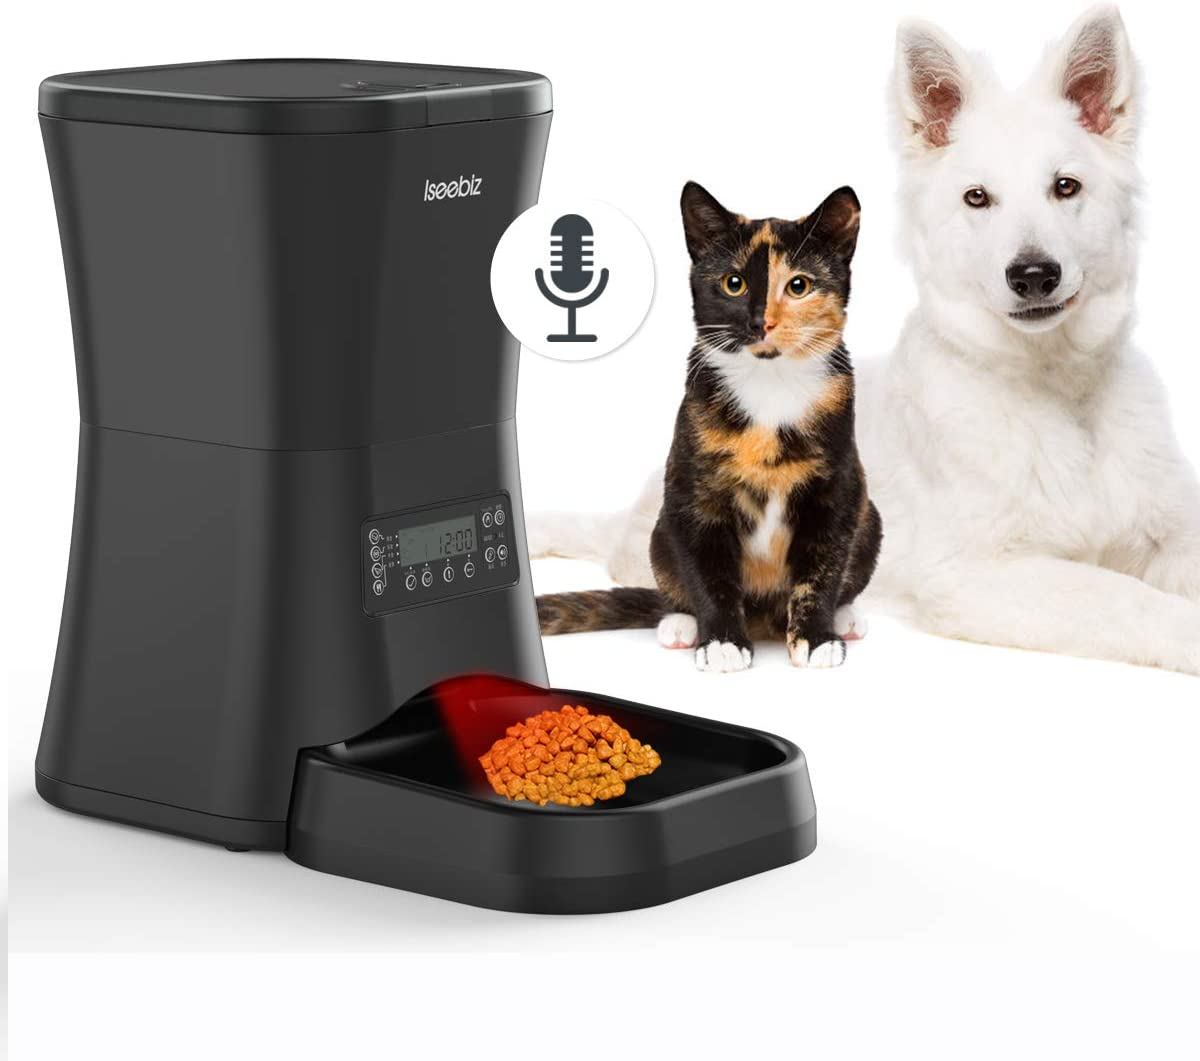 Iseebiz 7L Automatic Pet Feeder, Dogs Cats Food Dispenser 4 Meals a Day with Voice Record Remind, Timer Programmable, Portion Control, Distribution Alarm, IR Detect, for Medium and Large Dogs Cats Pet